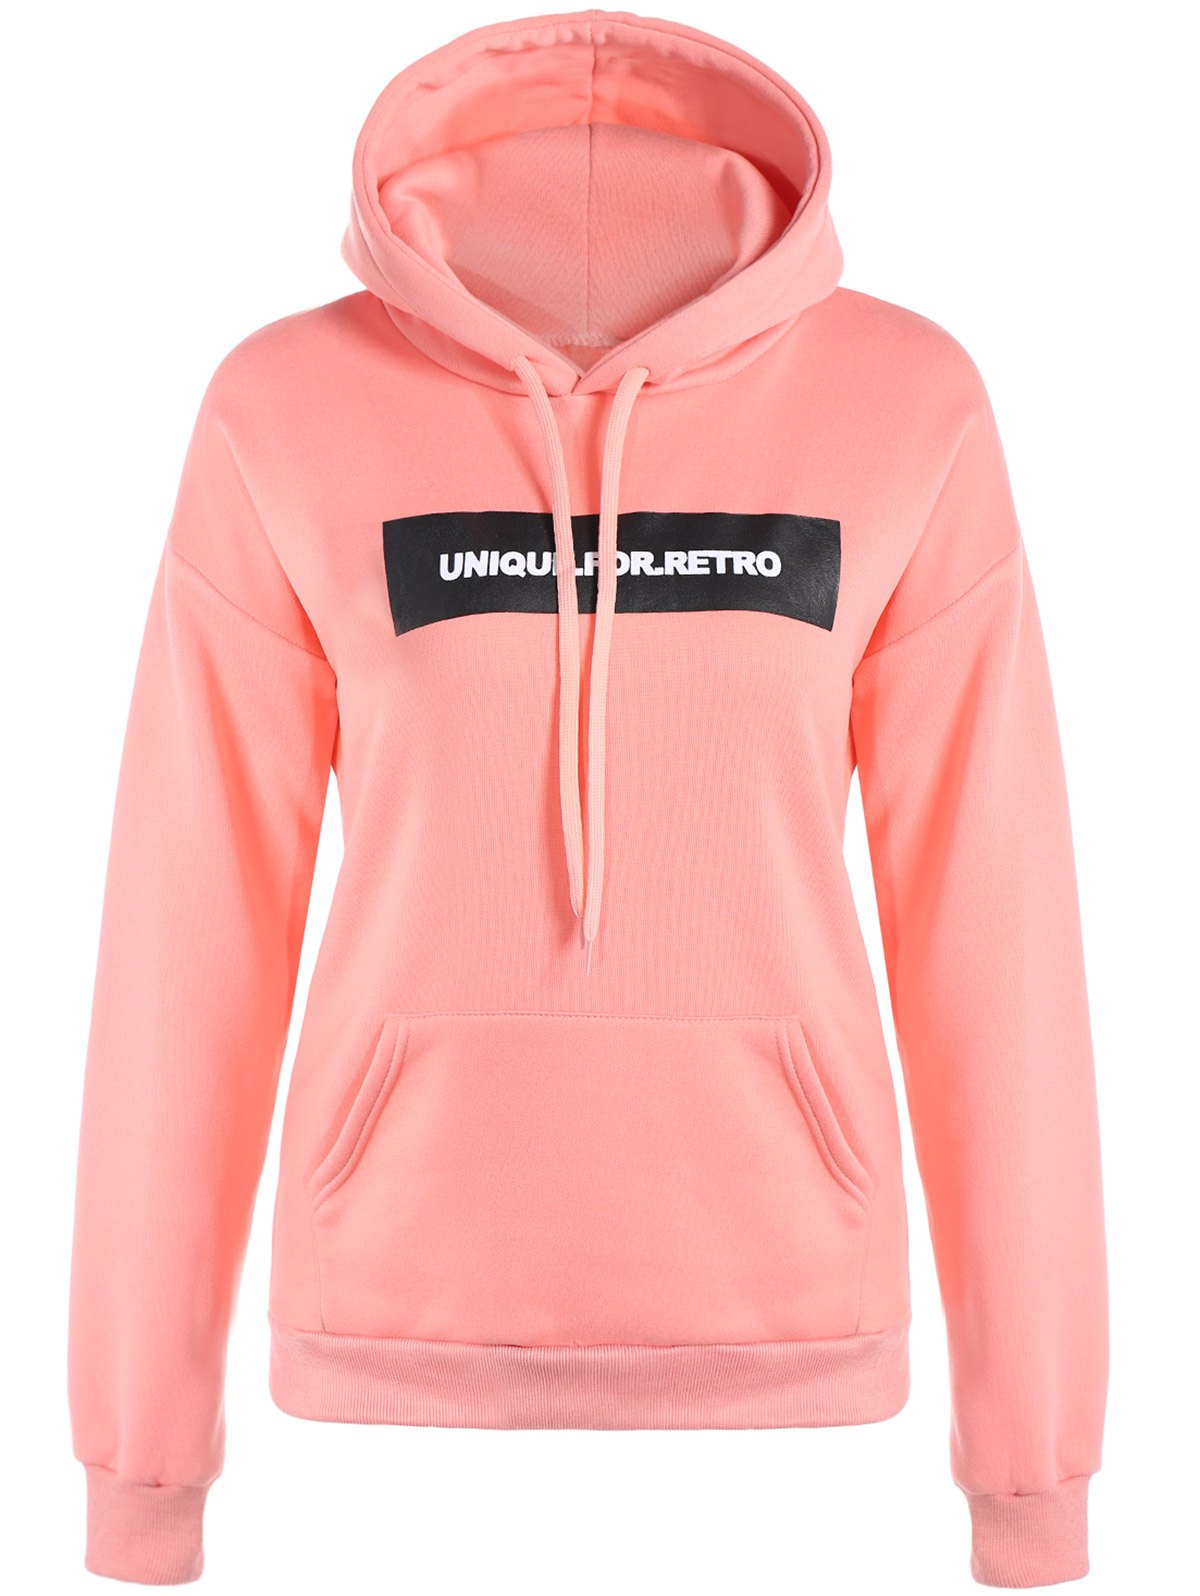 Letter Drawstring HoodieWomen<br><br><br>Size: S<br>Color: PINK